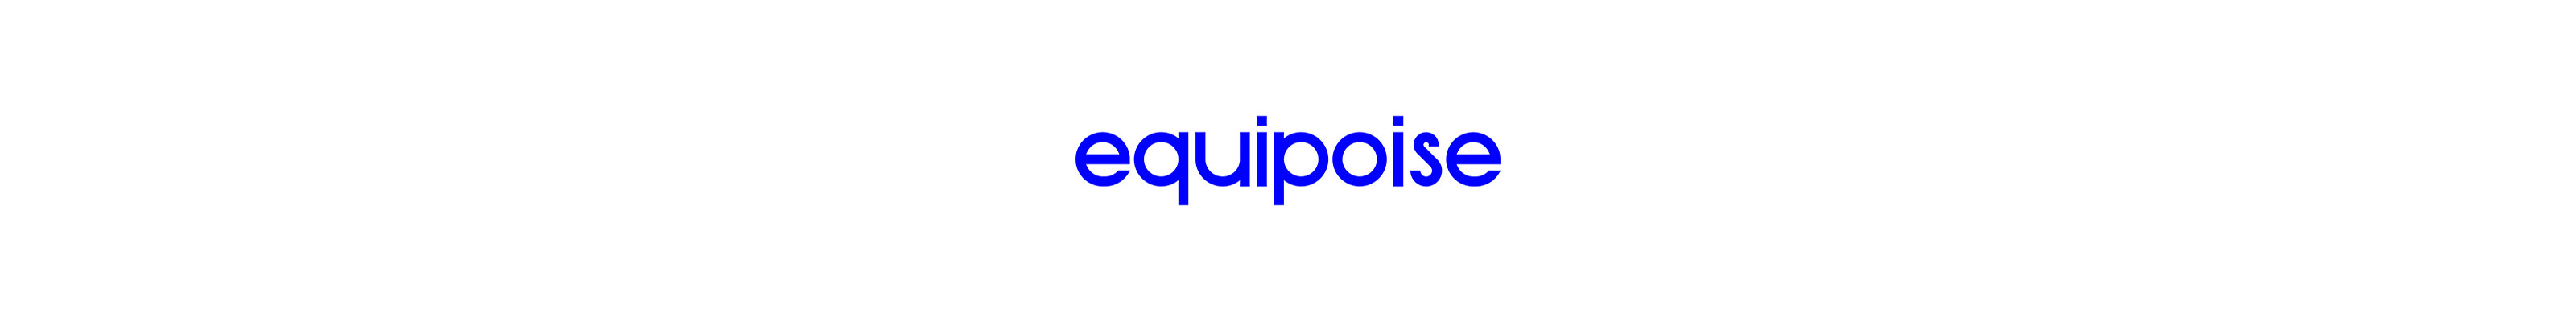 Equipoise Designers on Behance